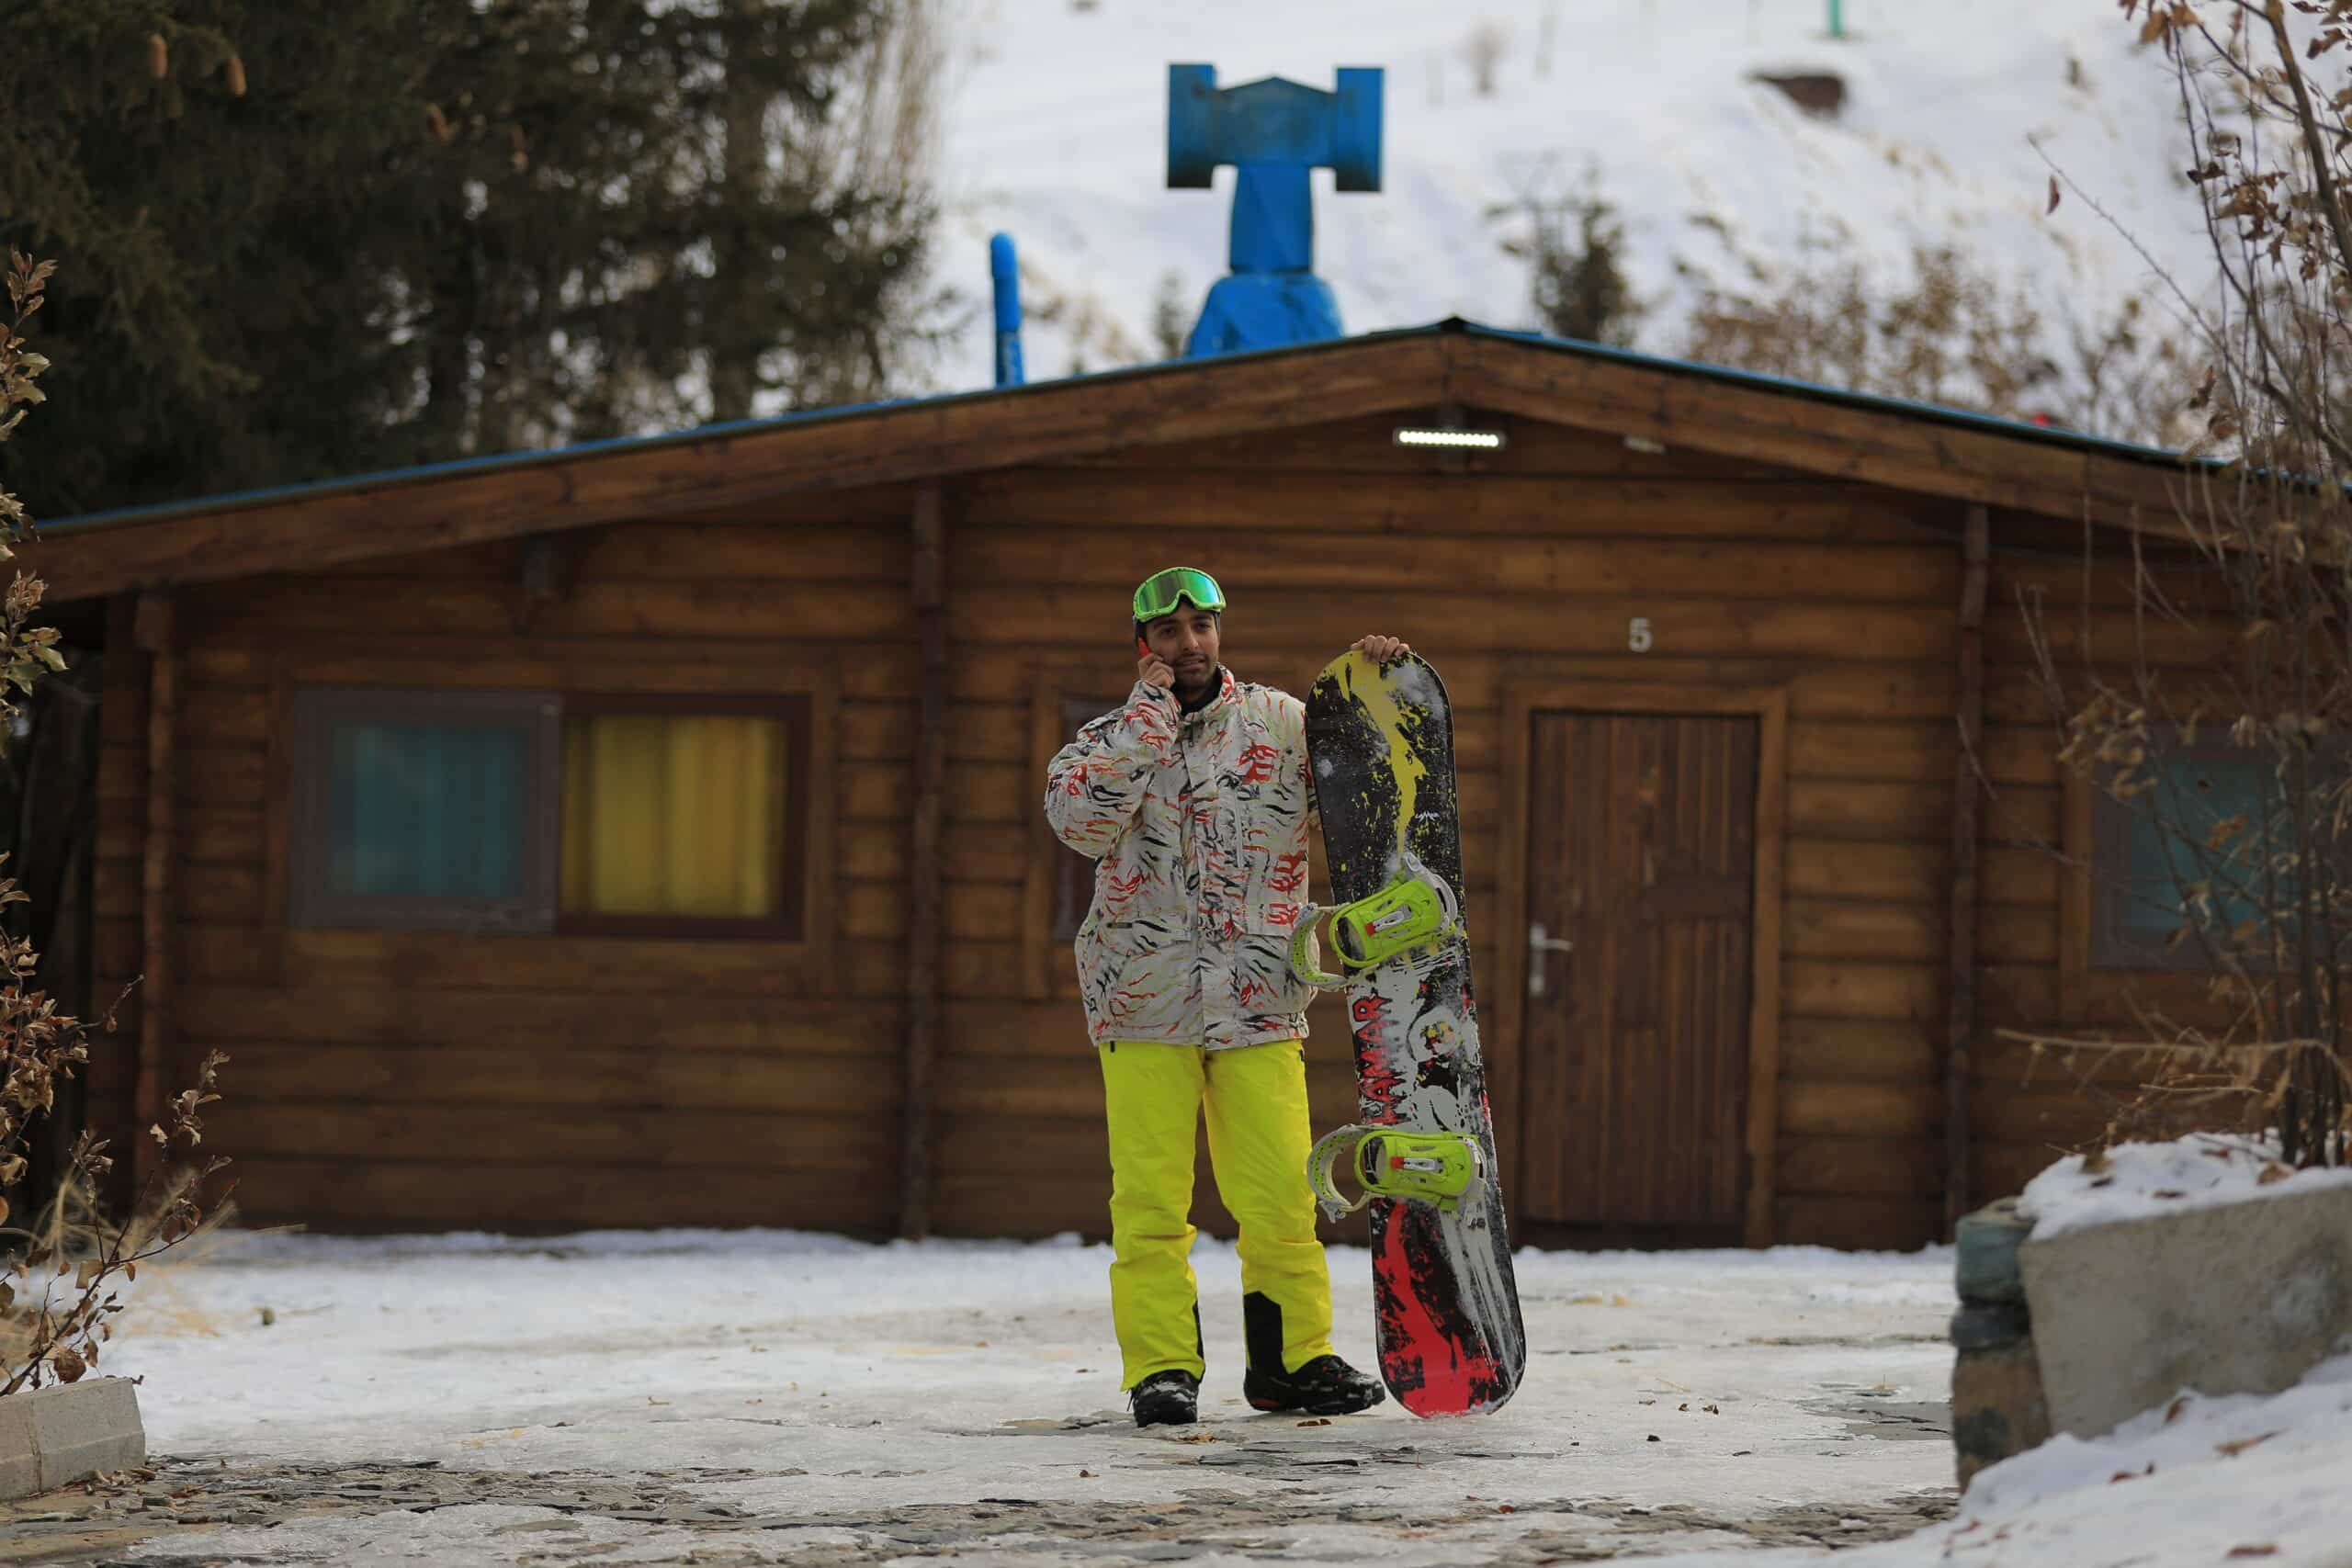 Man in snowboard pants